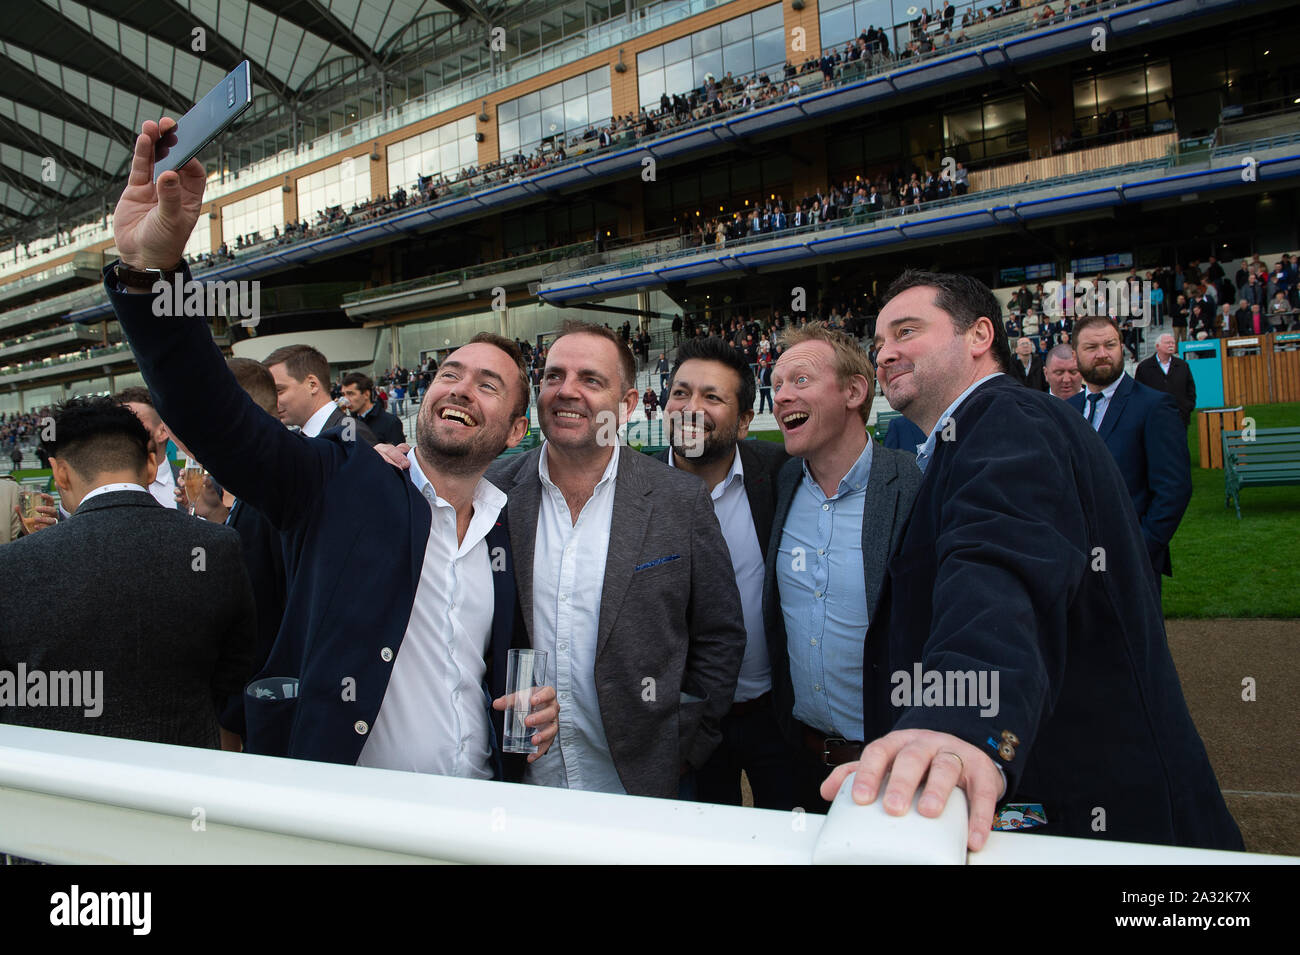 Autumn Racing Weekend & Ascot Beer Festival, Ascot Racecourse, Ascot, Berkshire, UK. 4th October, 2019. Selfie time for these men at the races. Credit: Maureen McLean/Alamy Stock Photo